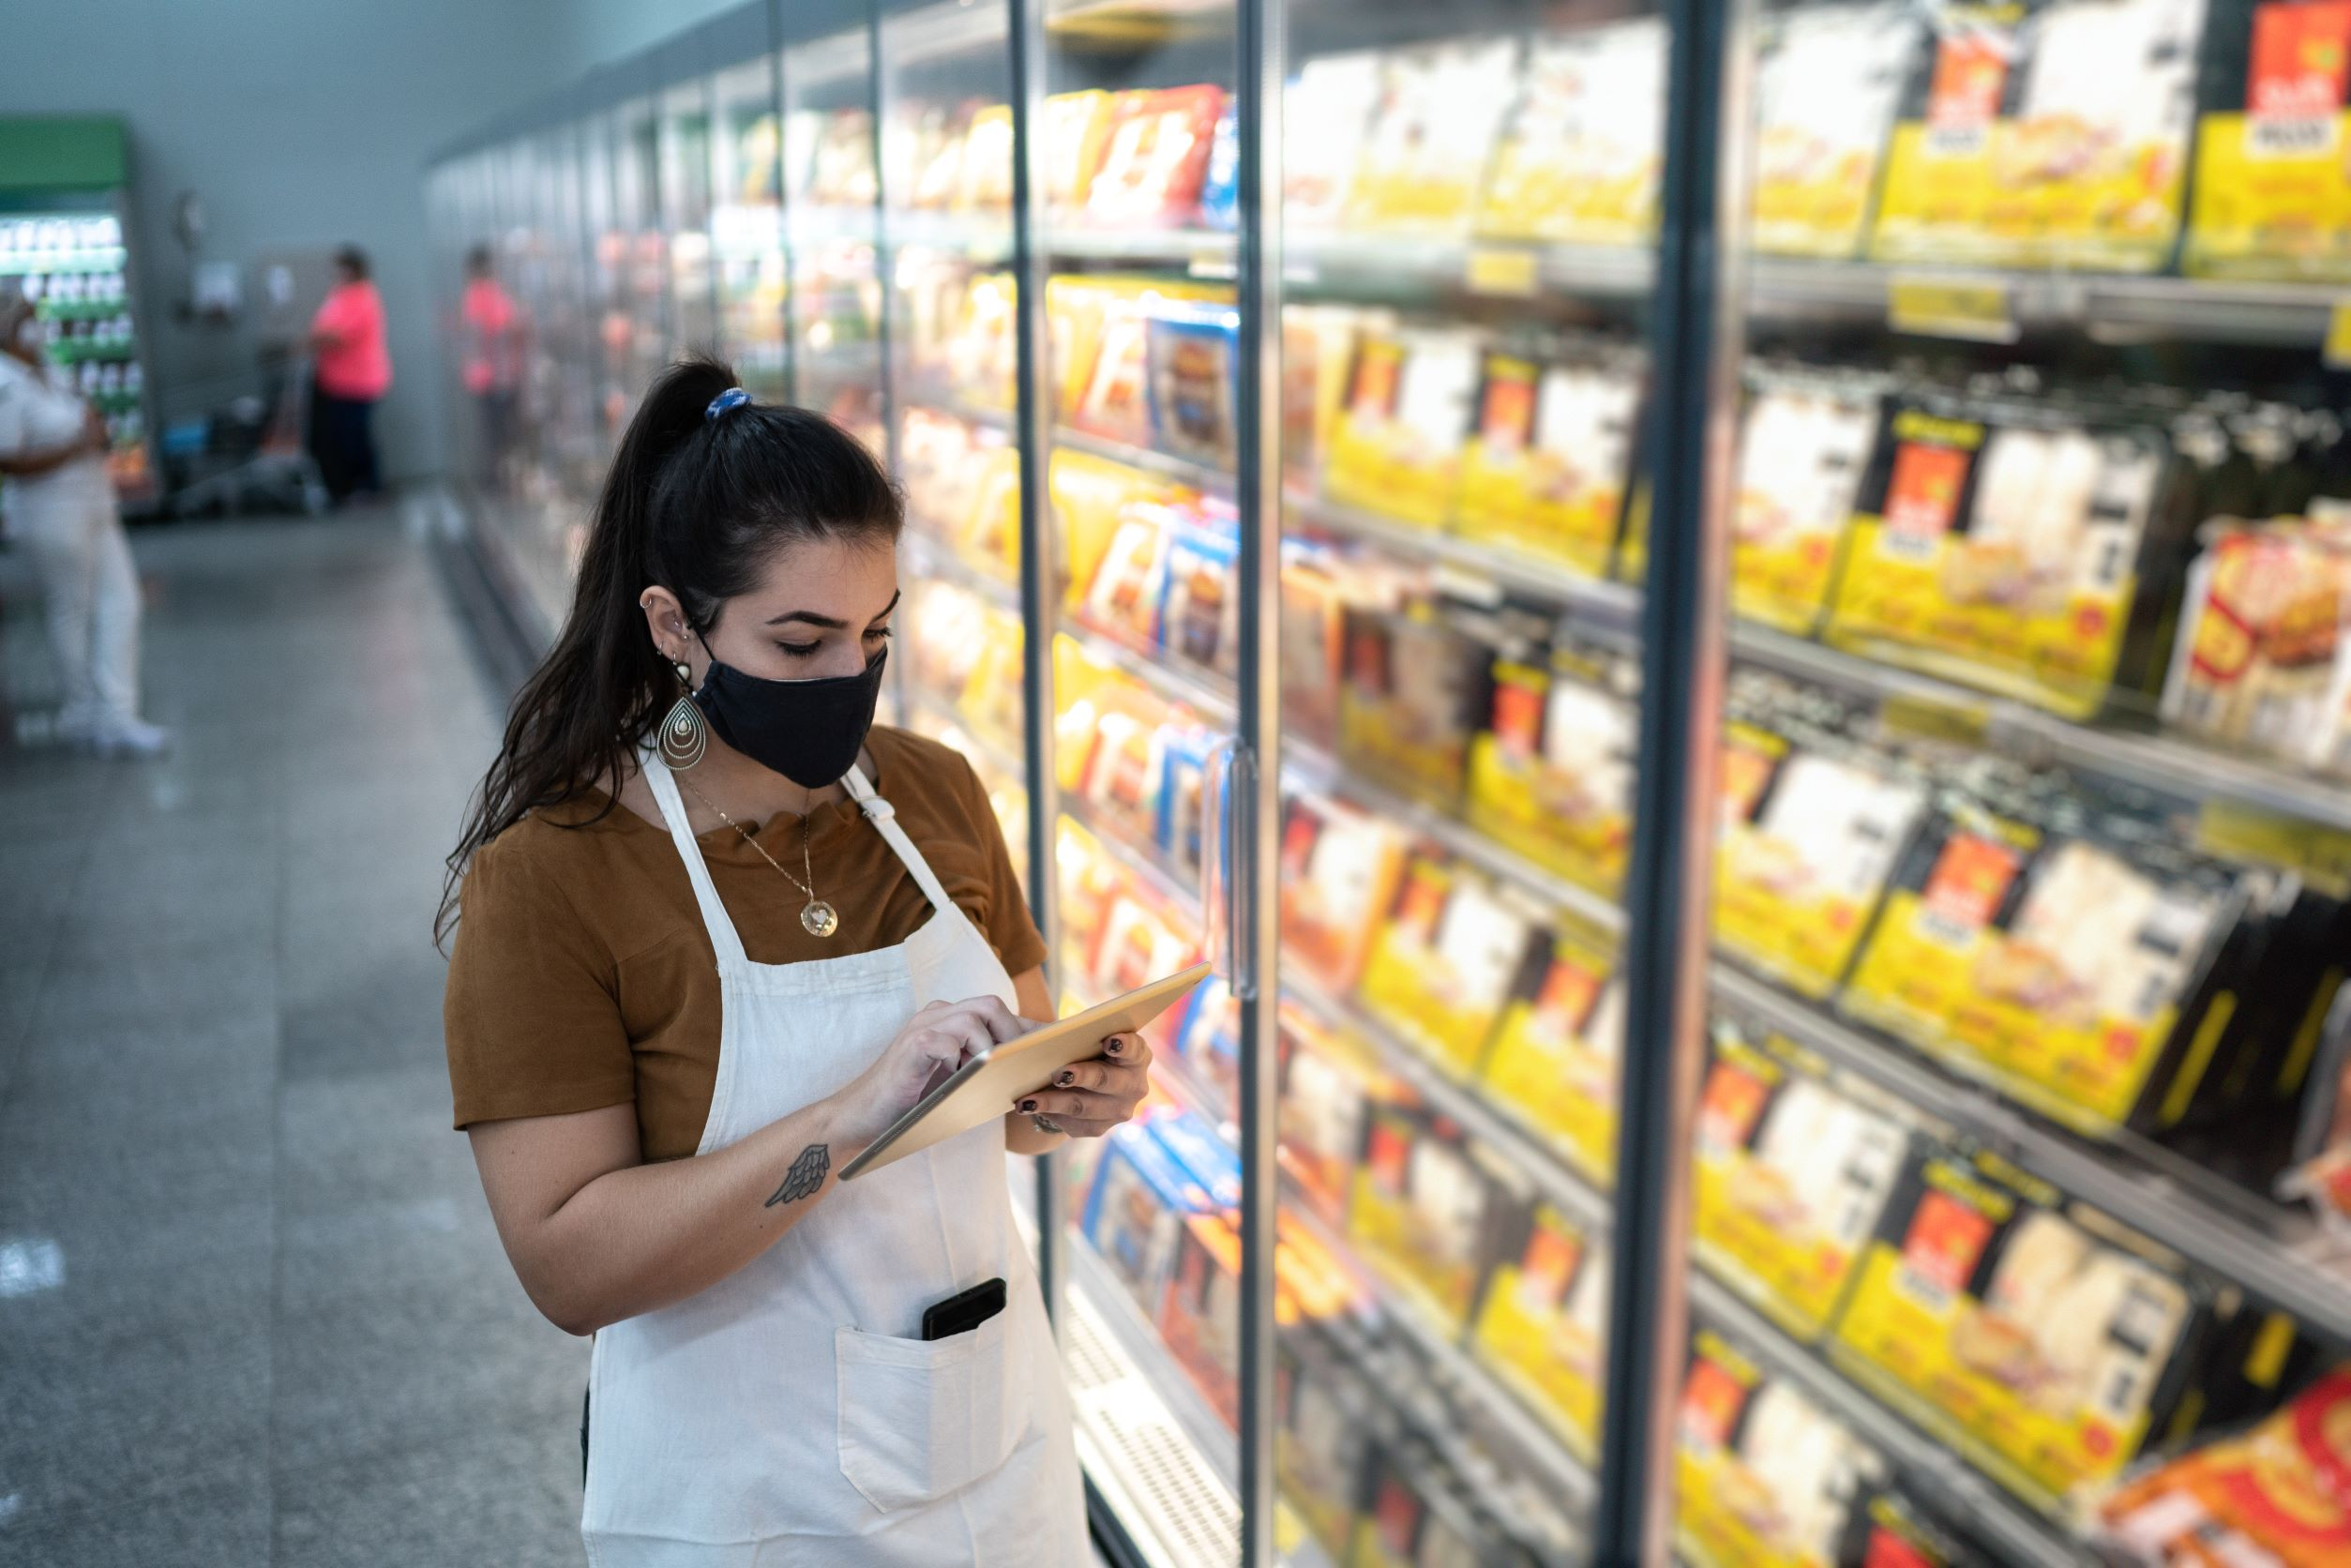 Preparing for a food safety audit – 5 actions for retailers